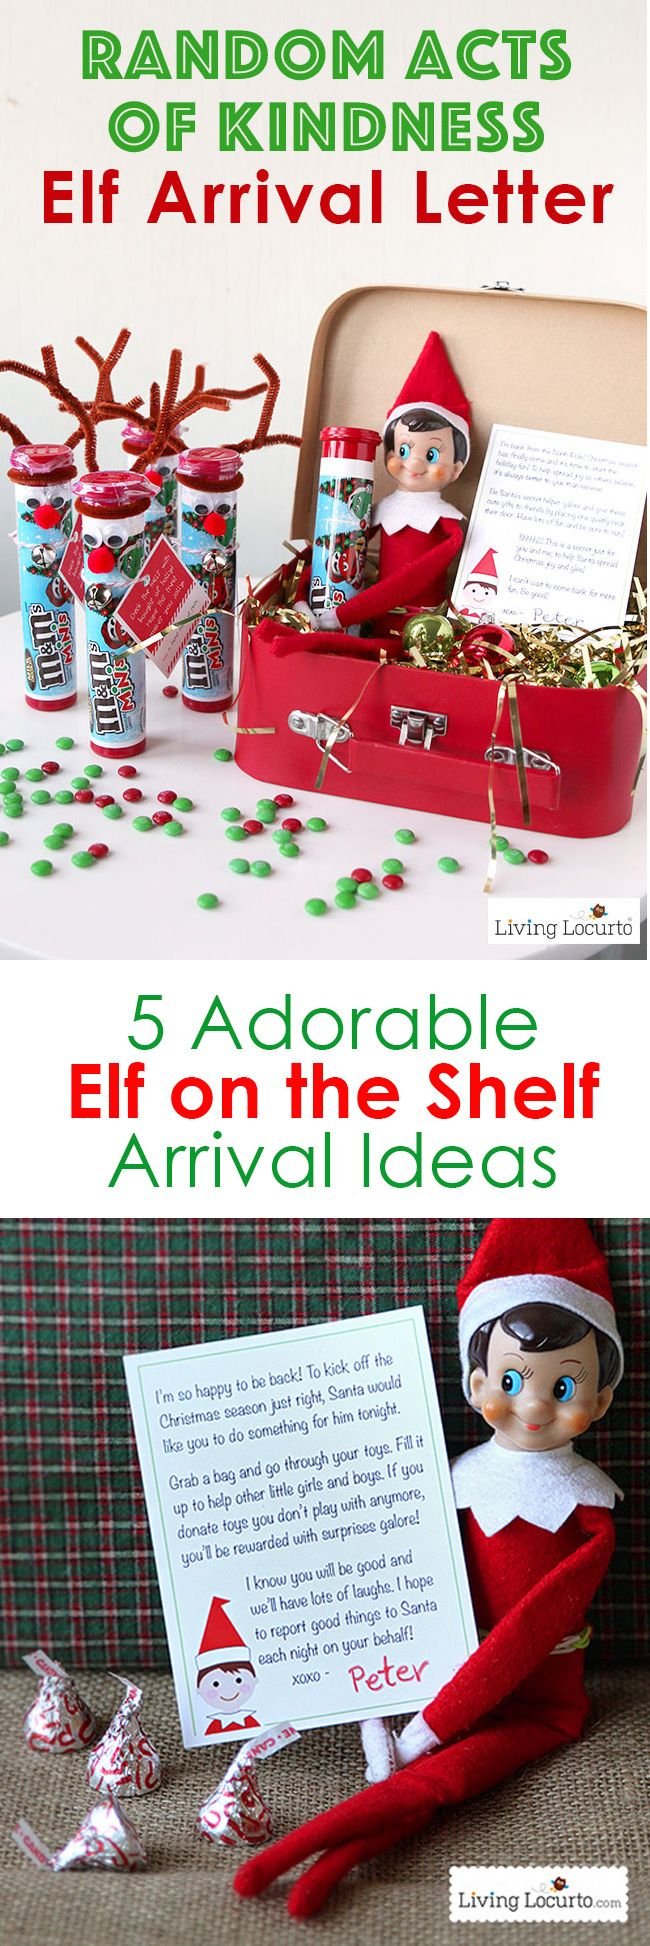 Best Elf on the Shelf Arrival Ideas #northpolebreakfast